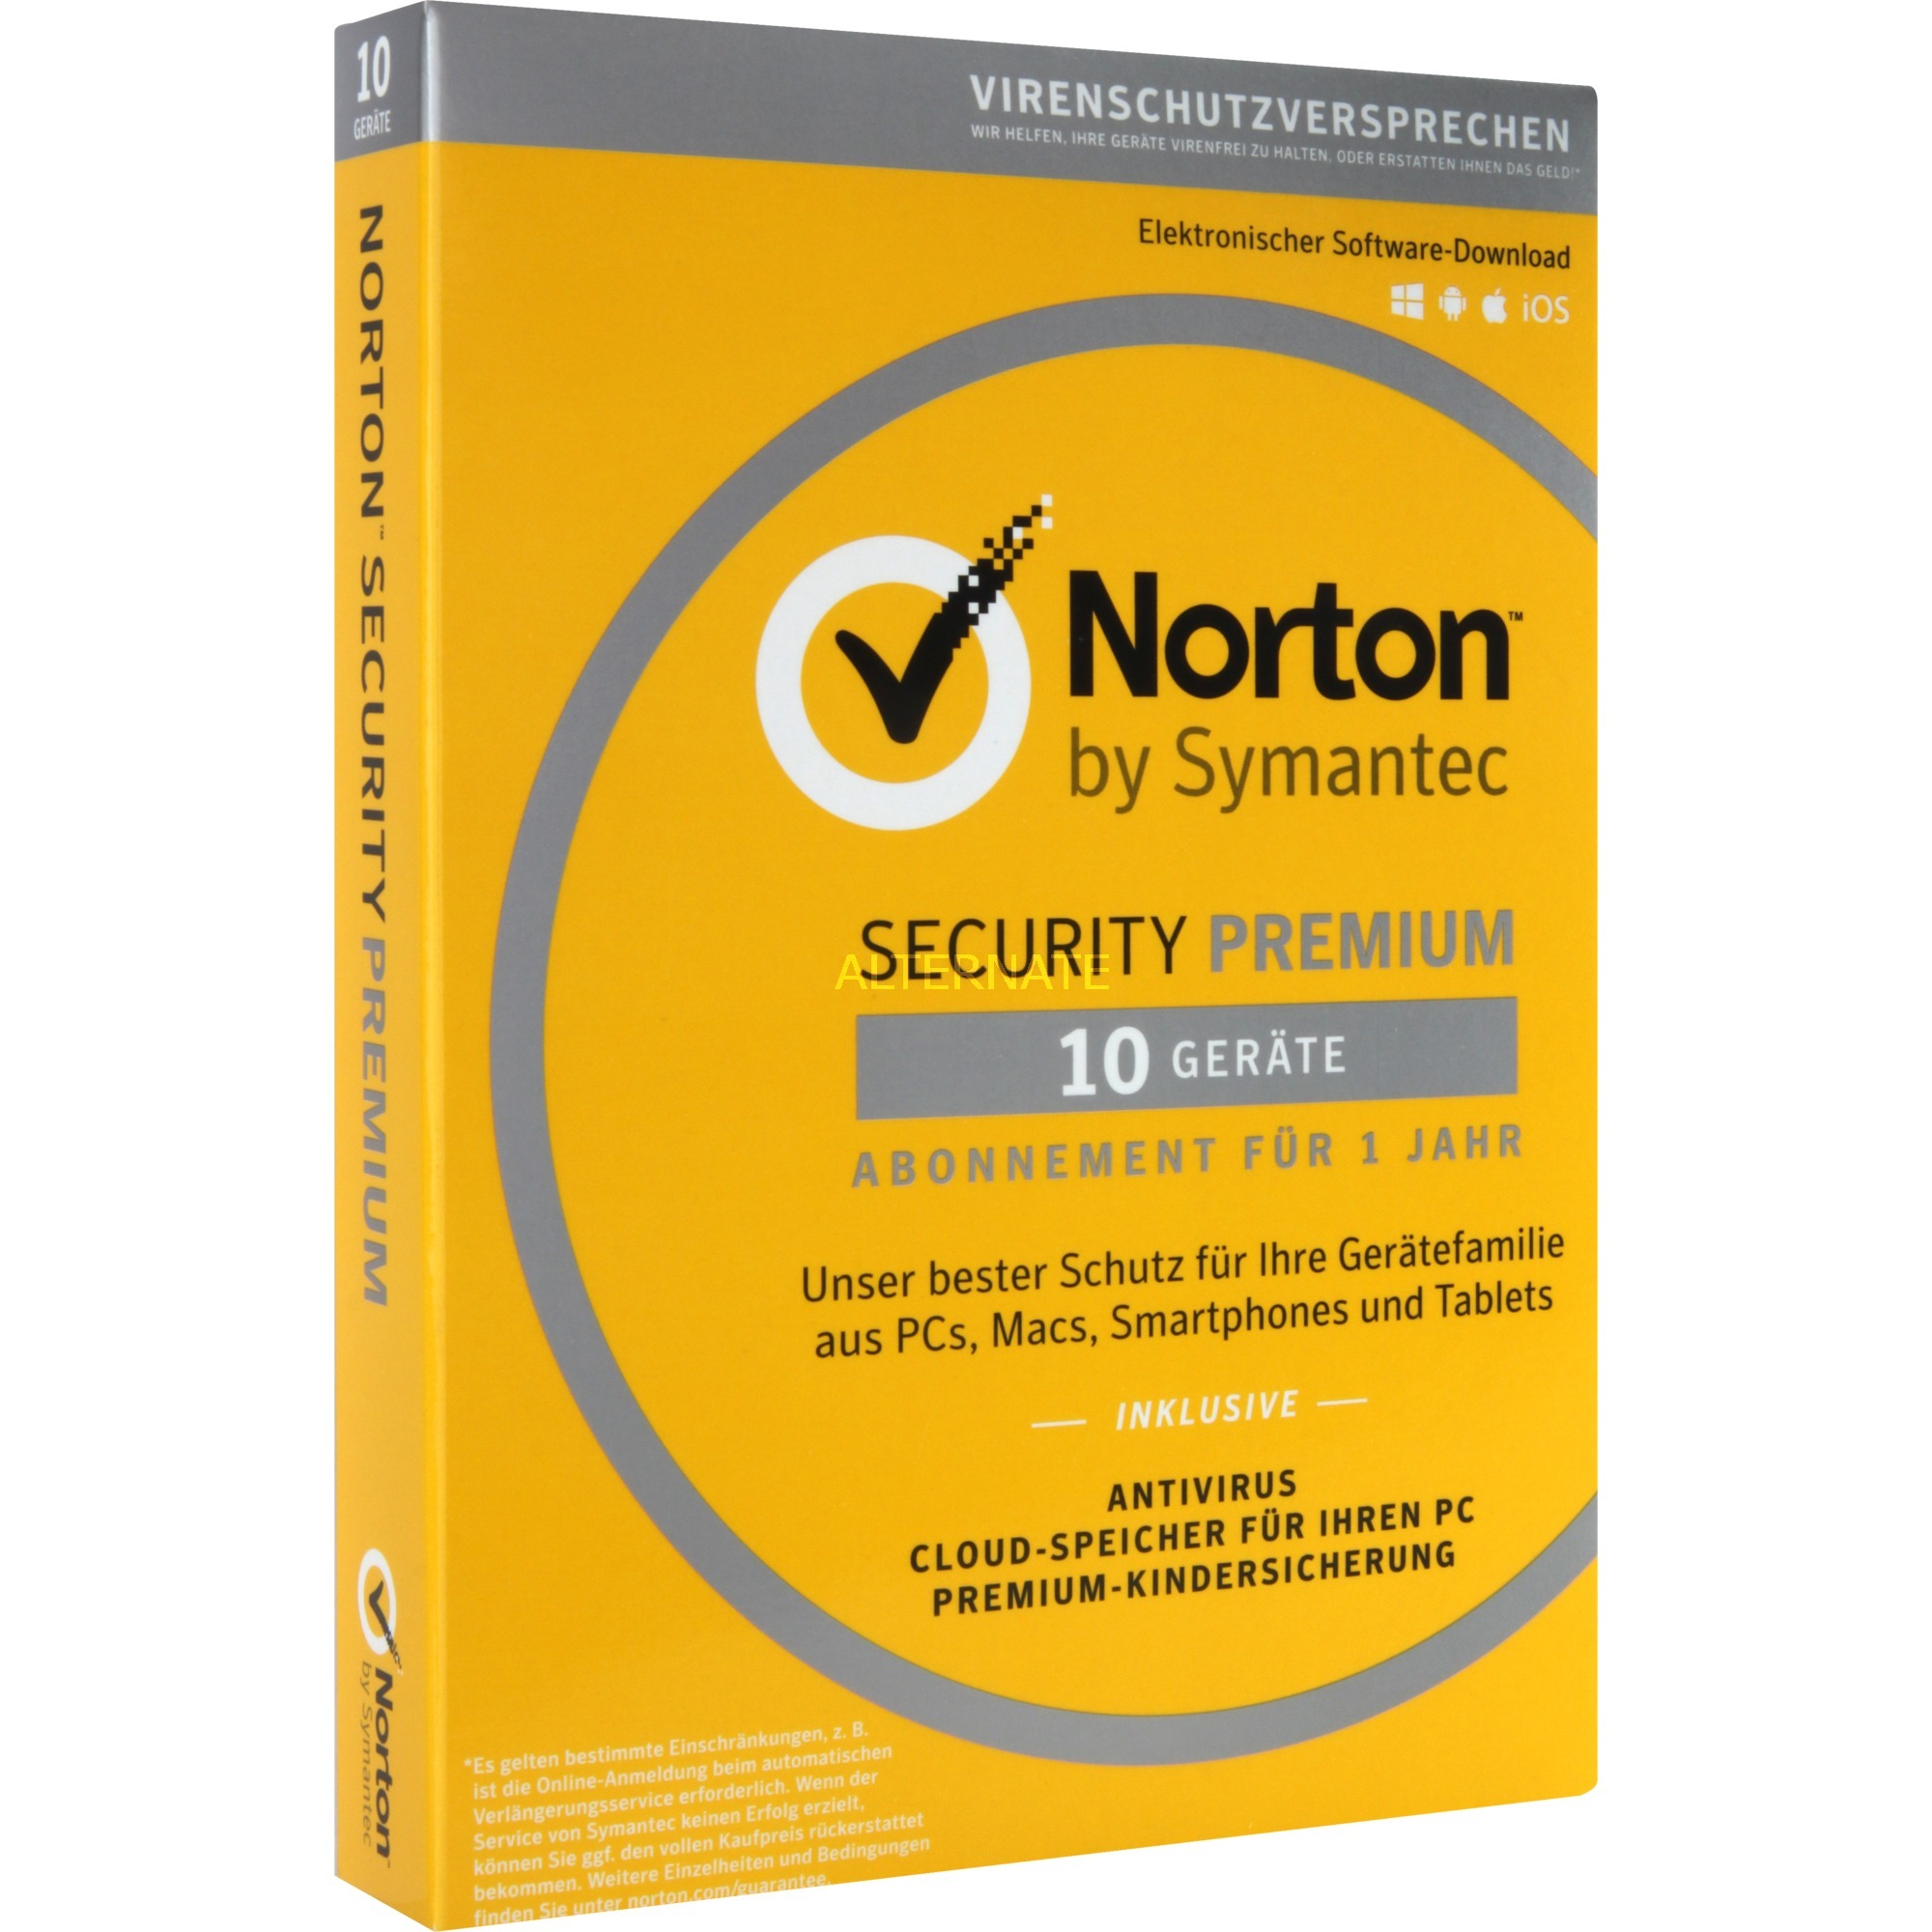 is norton security free